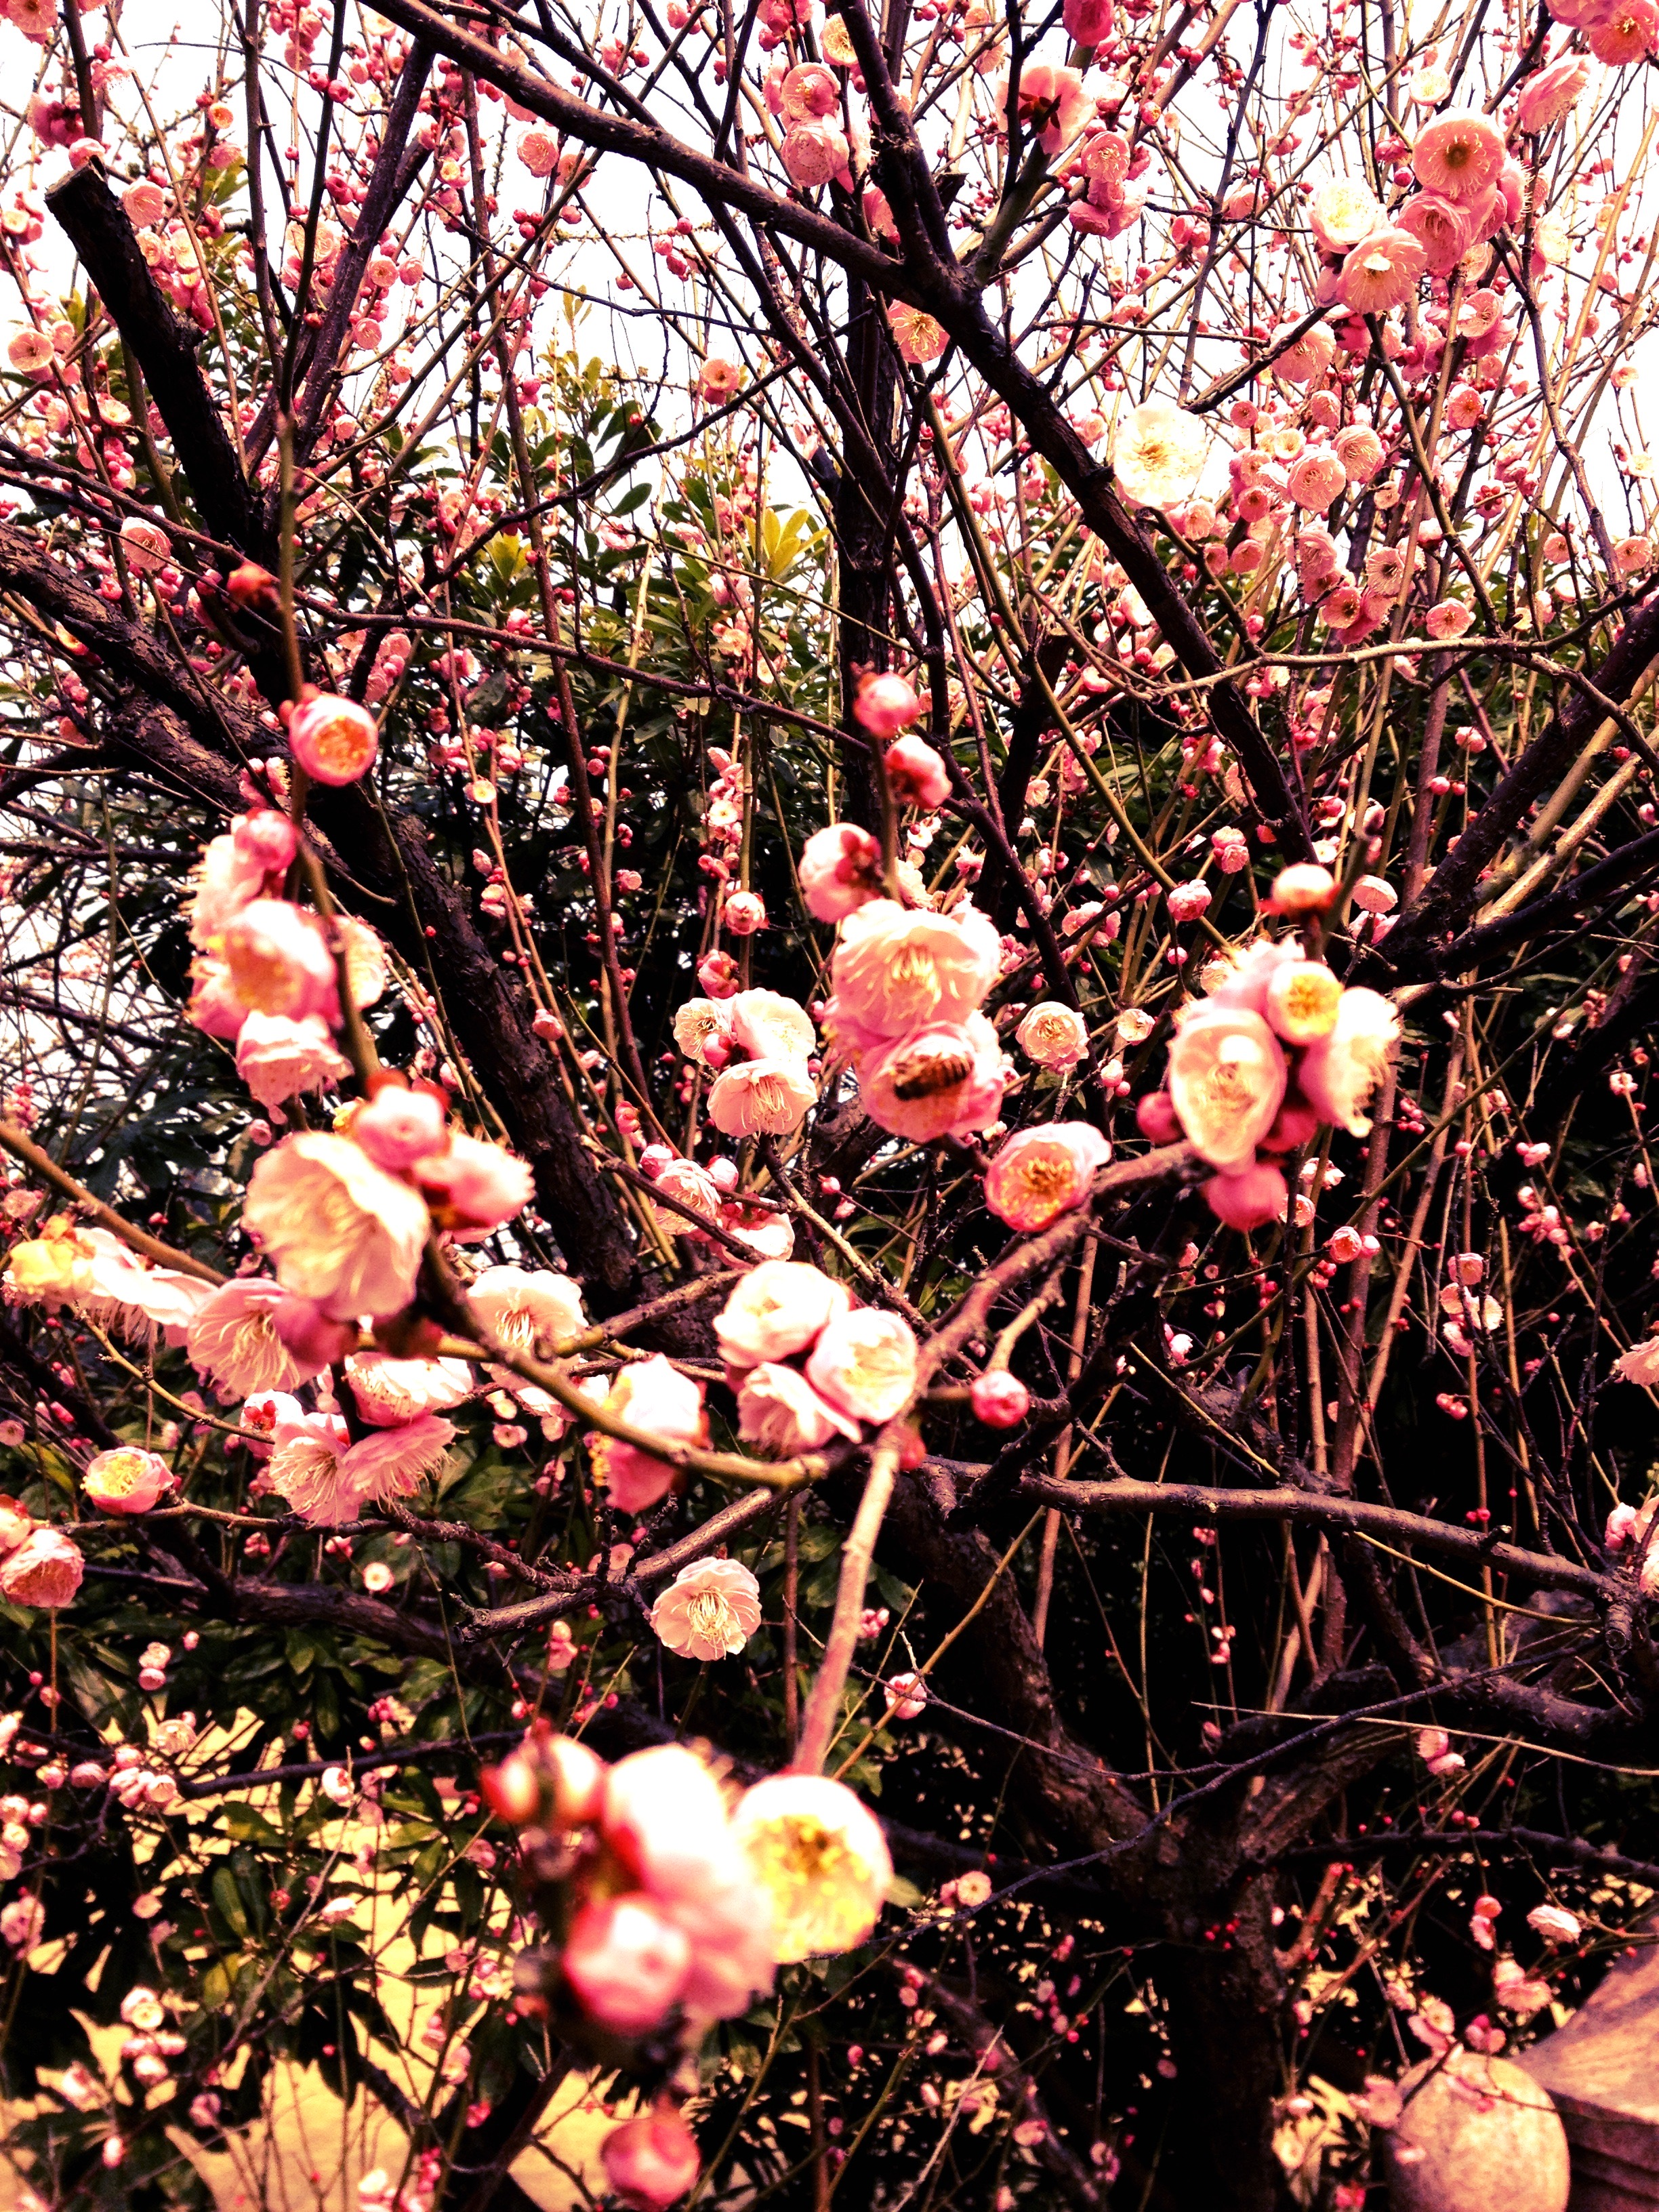 Plum blossoms announce the arrival of Spring (Shanghai, China)